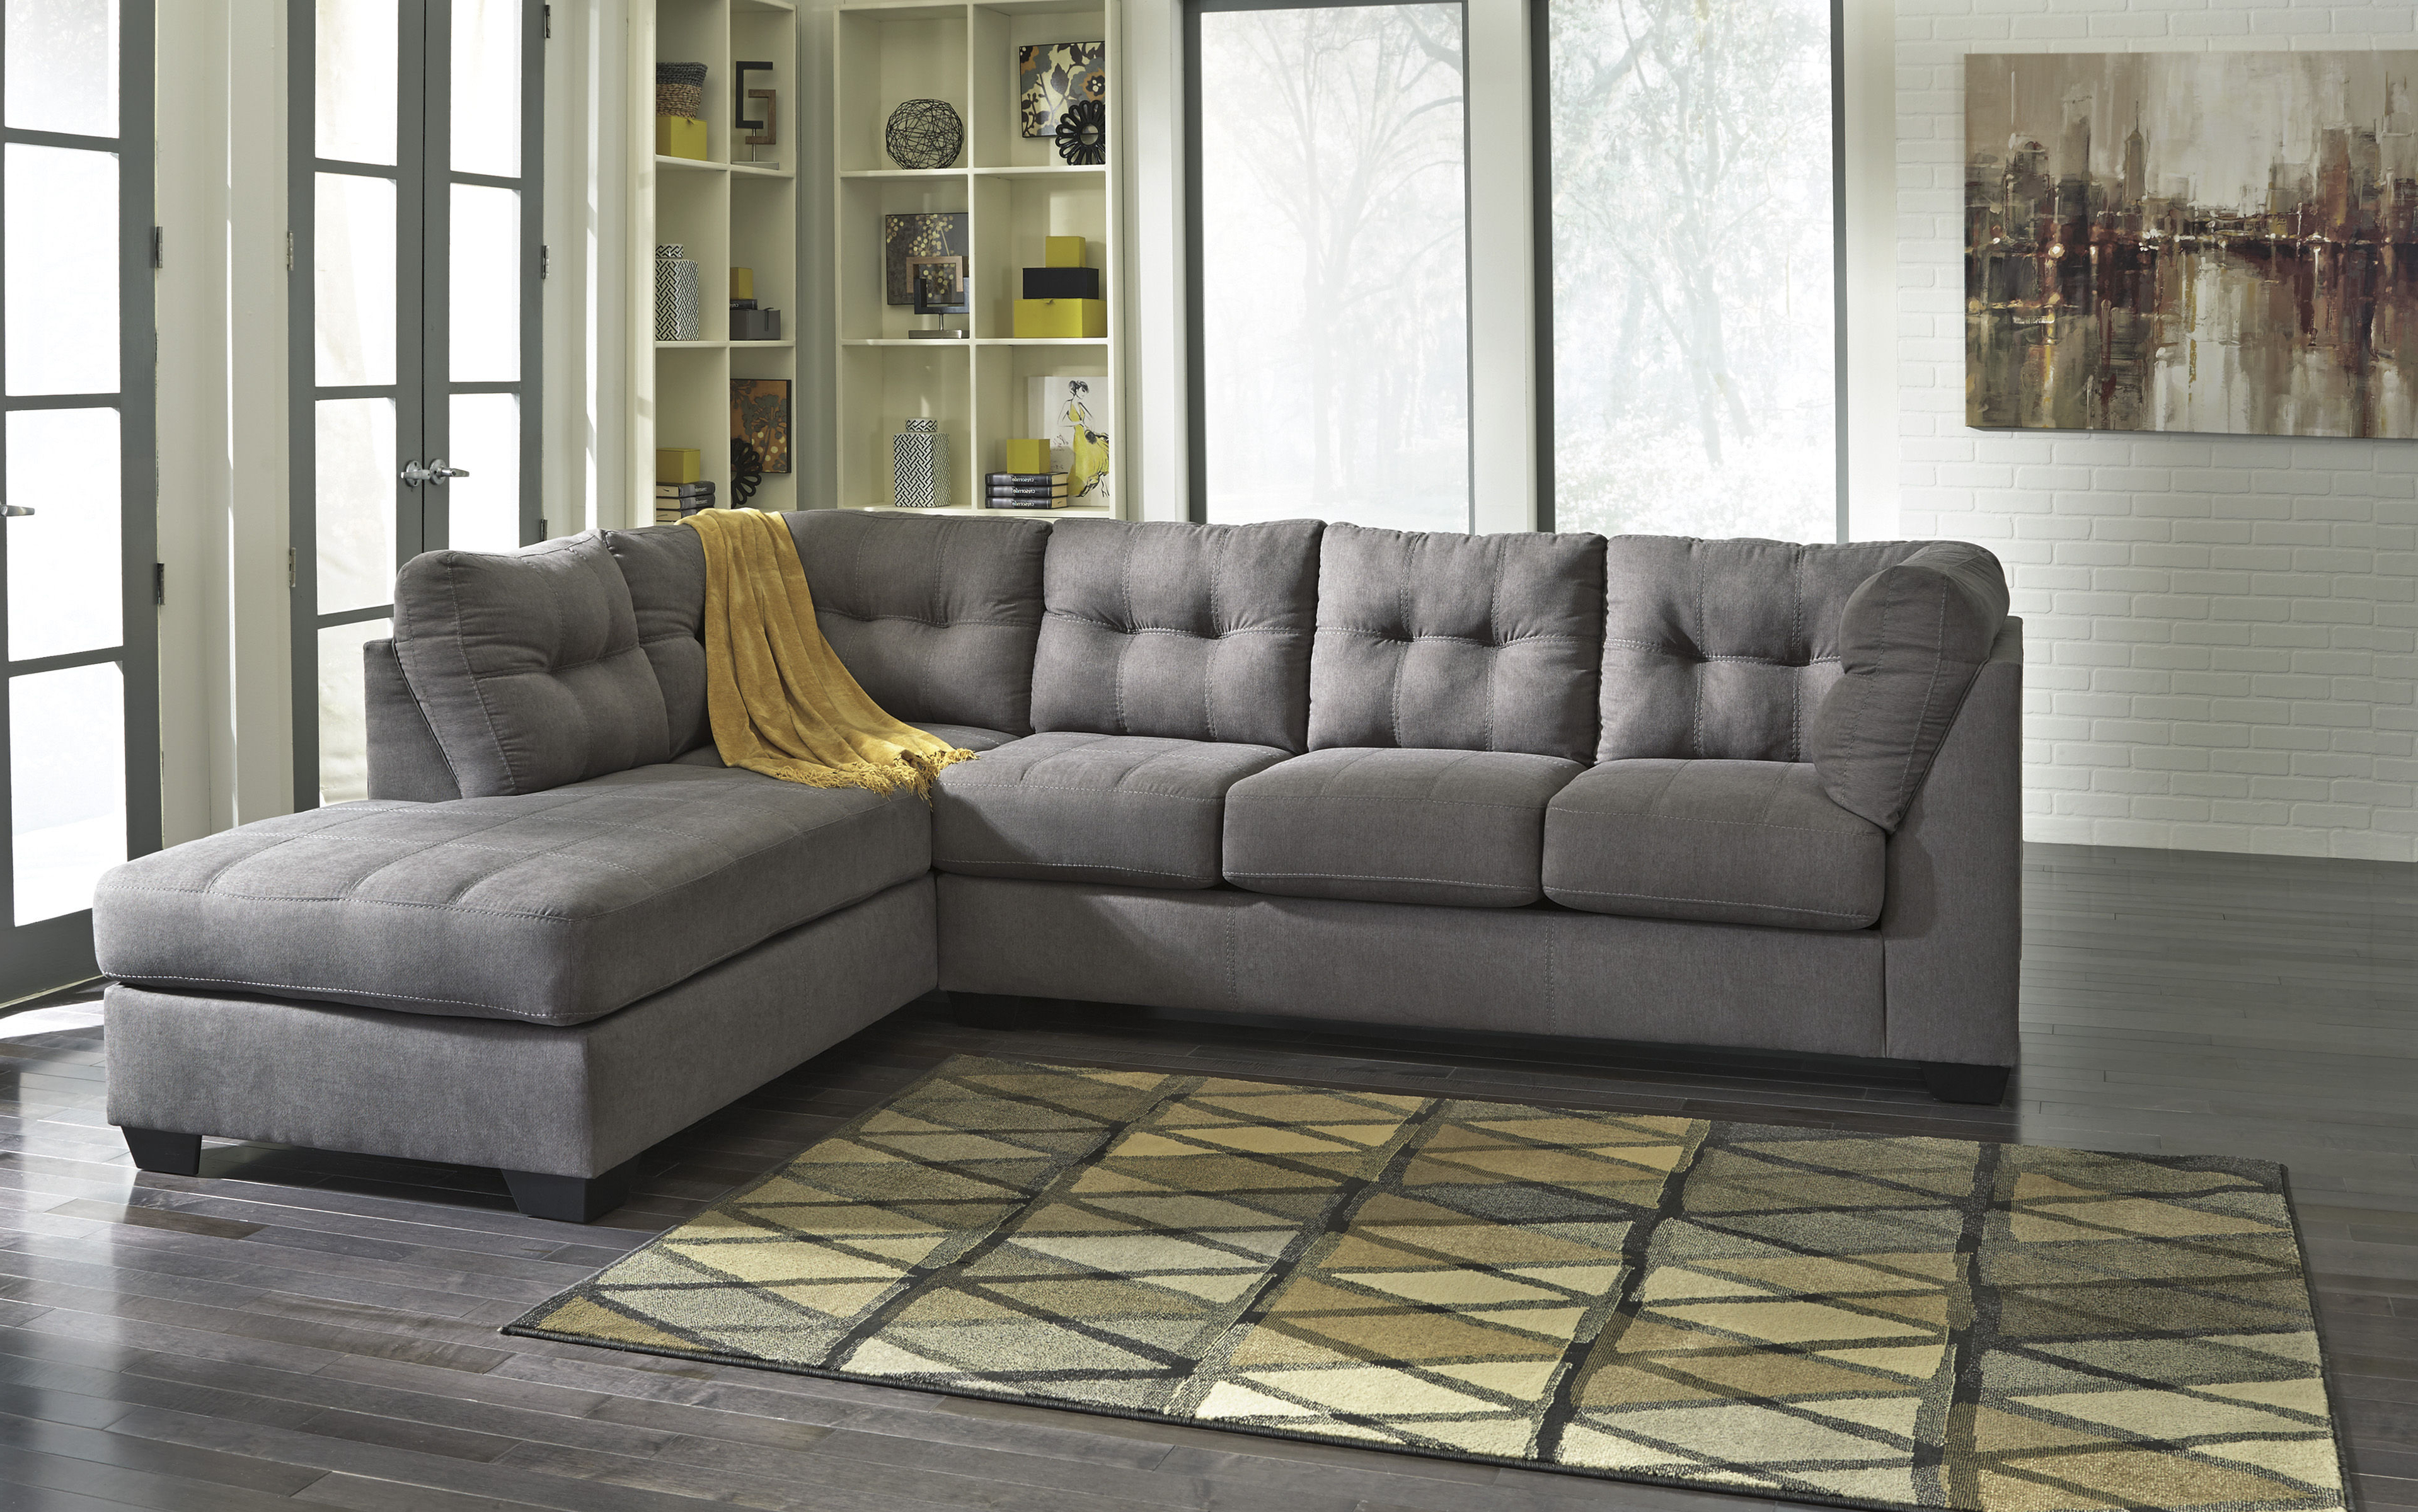 Lucy Dark Grey 2 Piece Sleeper Sectionals With Laf Chaise In Most Popular Ashley Furniture Maier Charcoal Raf Chaise Sectional (View 5 of 20)